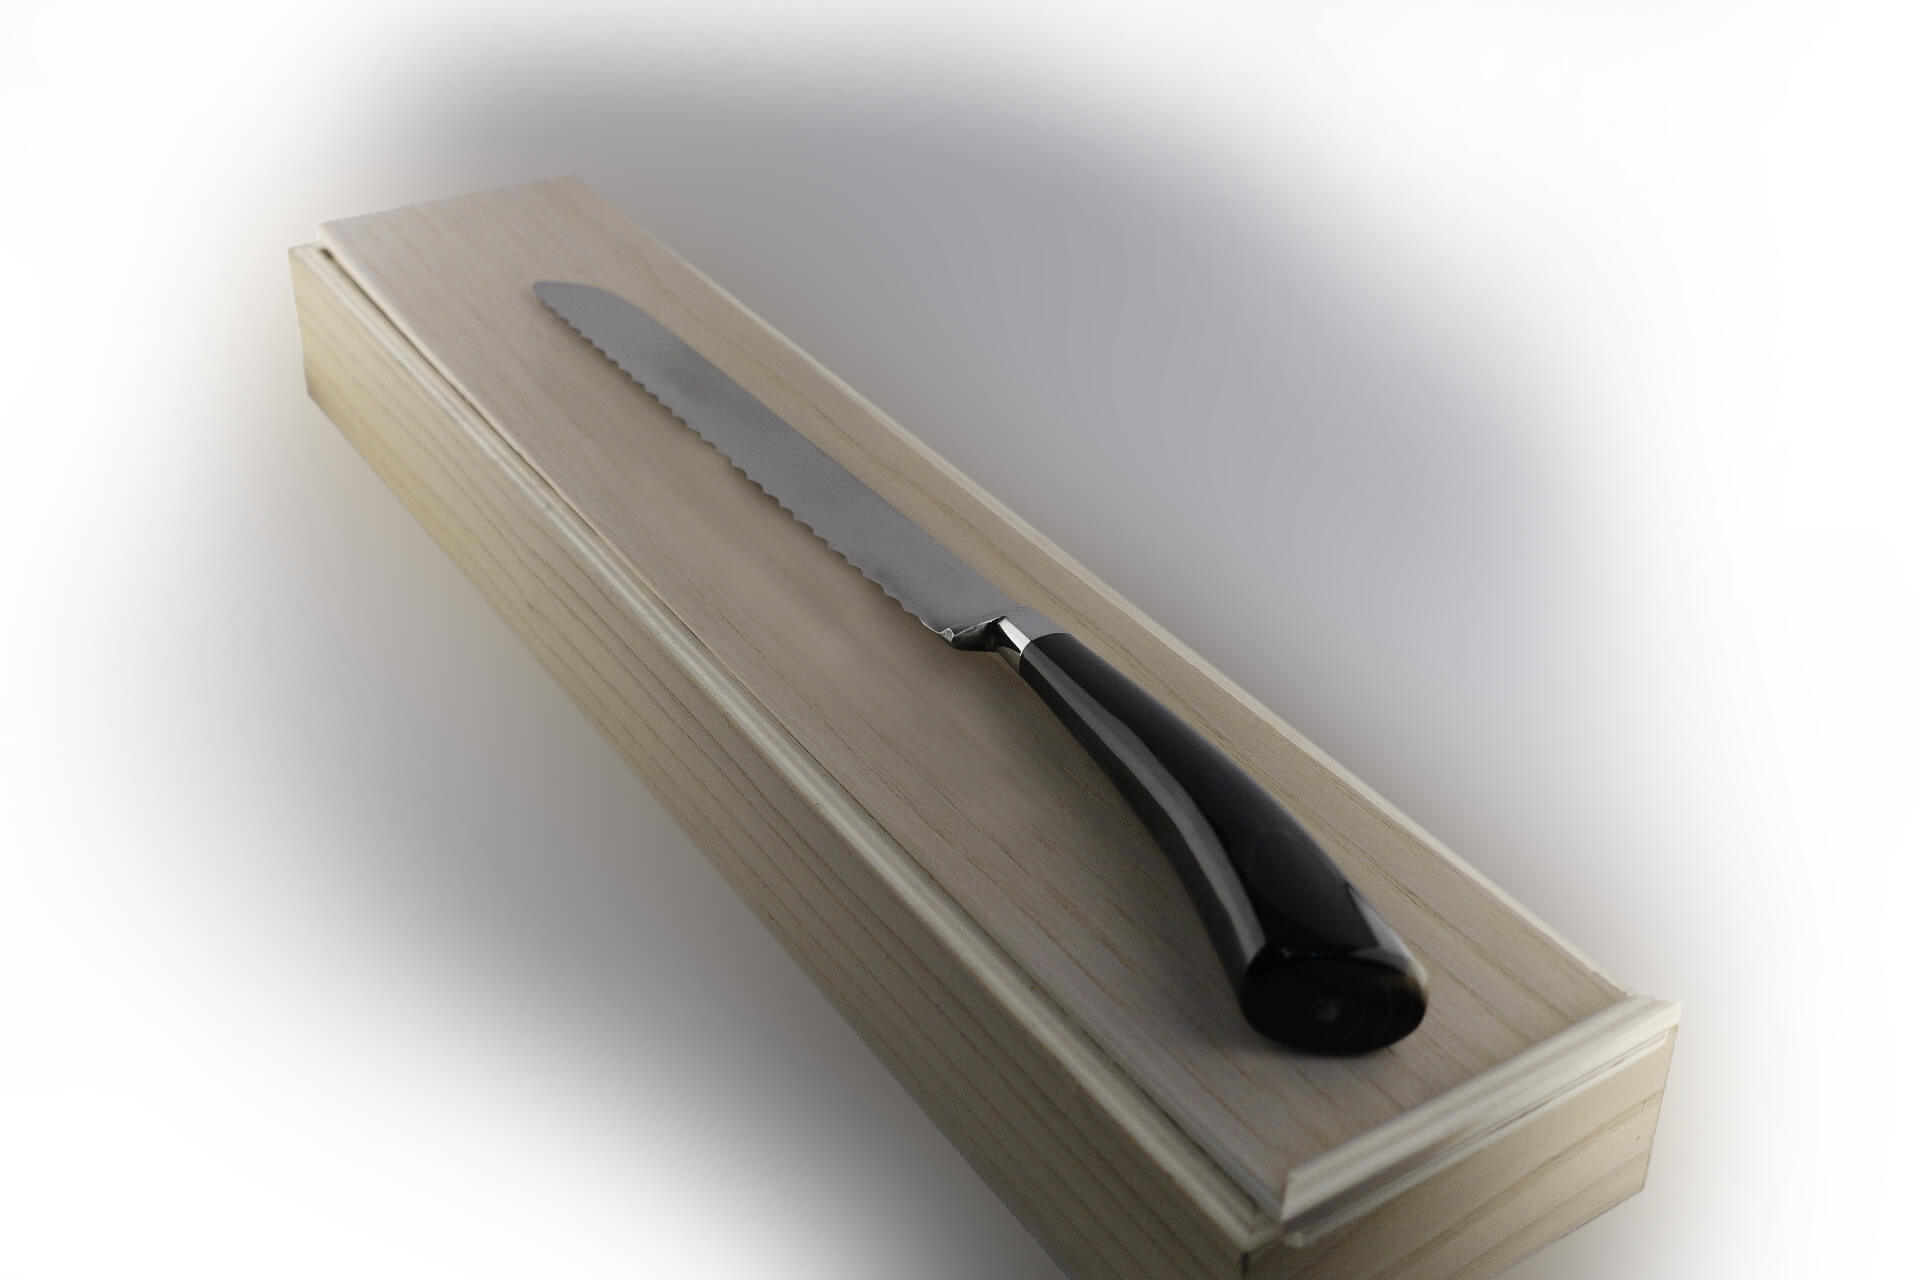 Knife In Forged Steel Handmade In Italy This Bread Knife